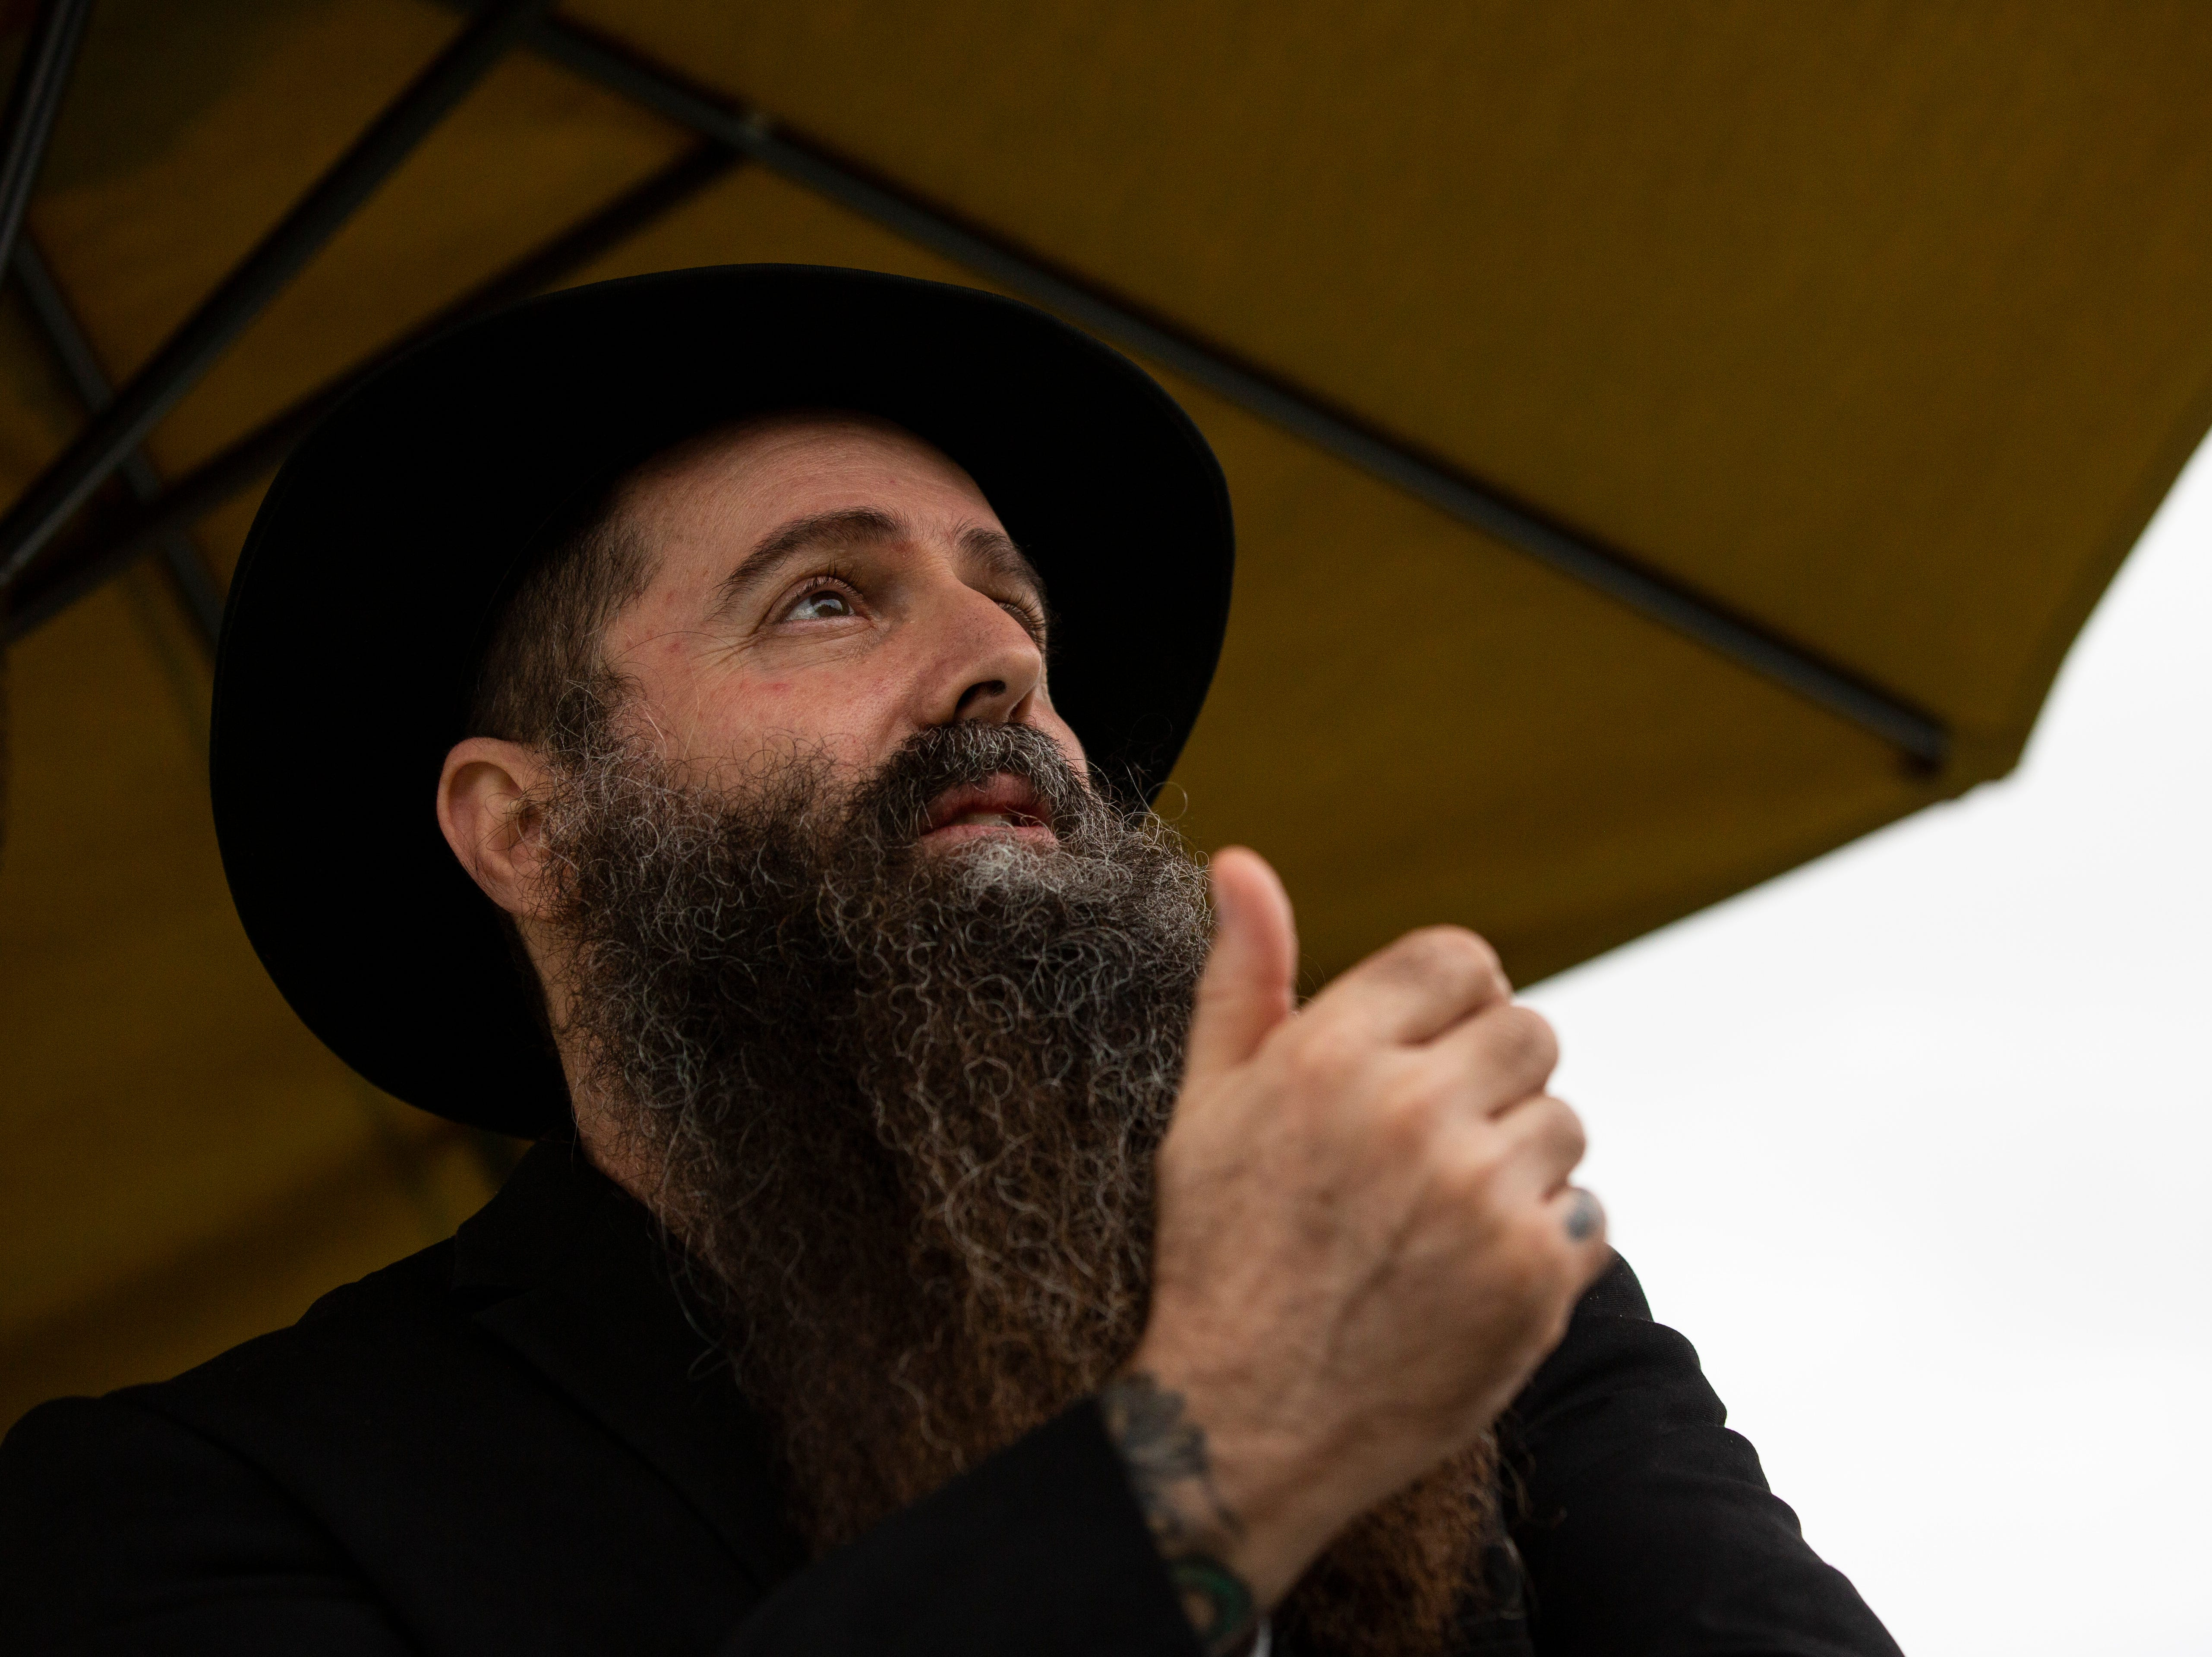 Dov Moshe Newmark Chabad Lubavitch talks about the meaning of Hanukkah in light of the recent tragedy in Pittsburgh during the cultural celebrations put up by the Chabad of Bonita Springs & Estero on Sunday evening, Dec. 9, 2018.